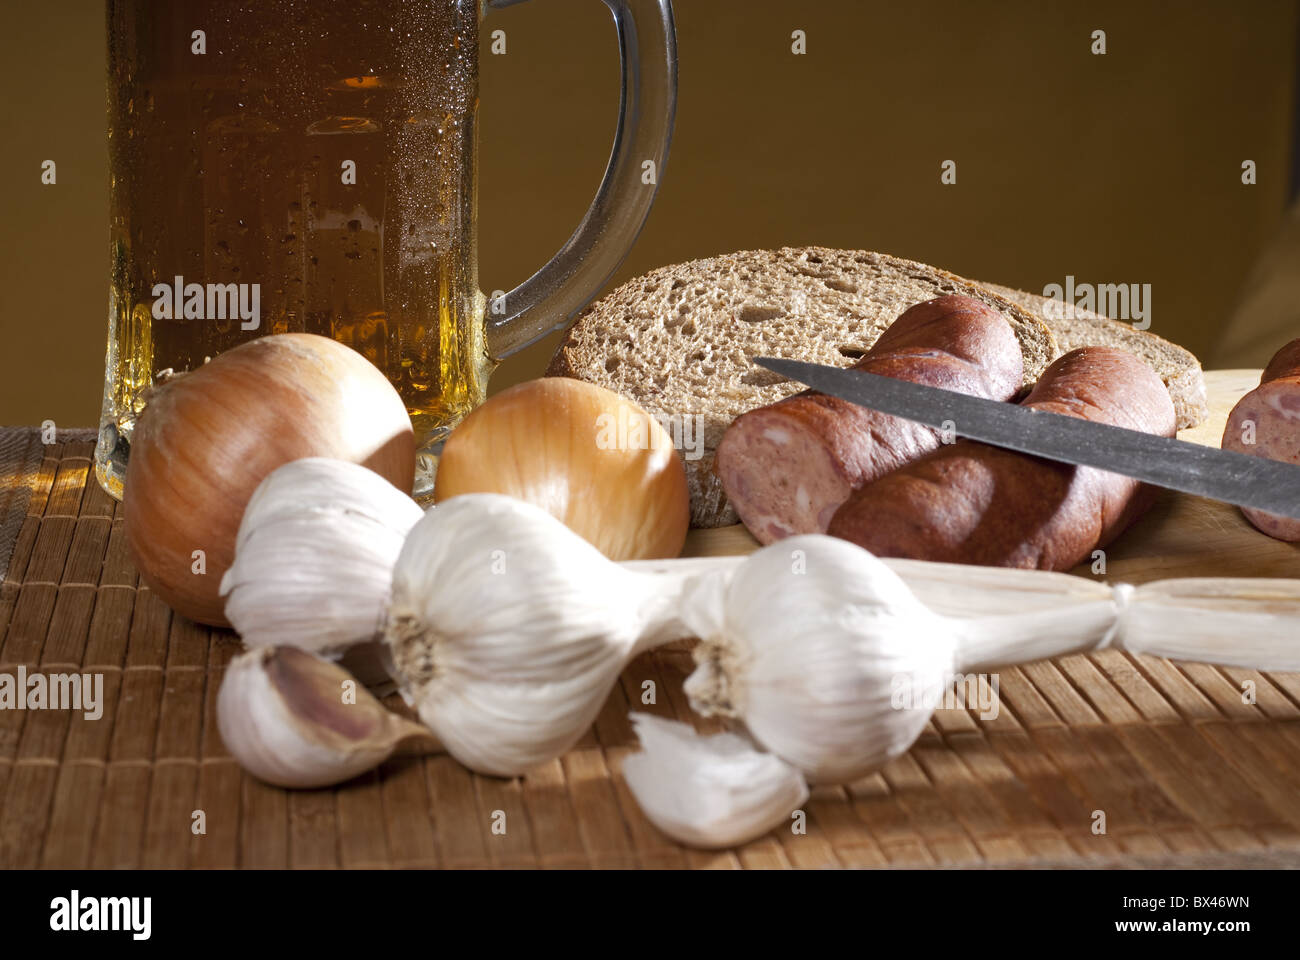 beer with garlic - Stock Image